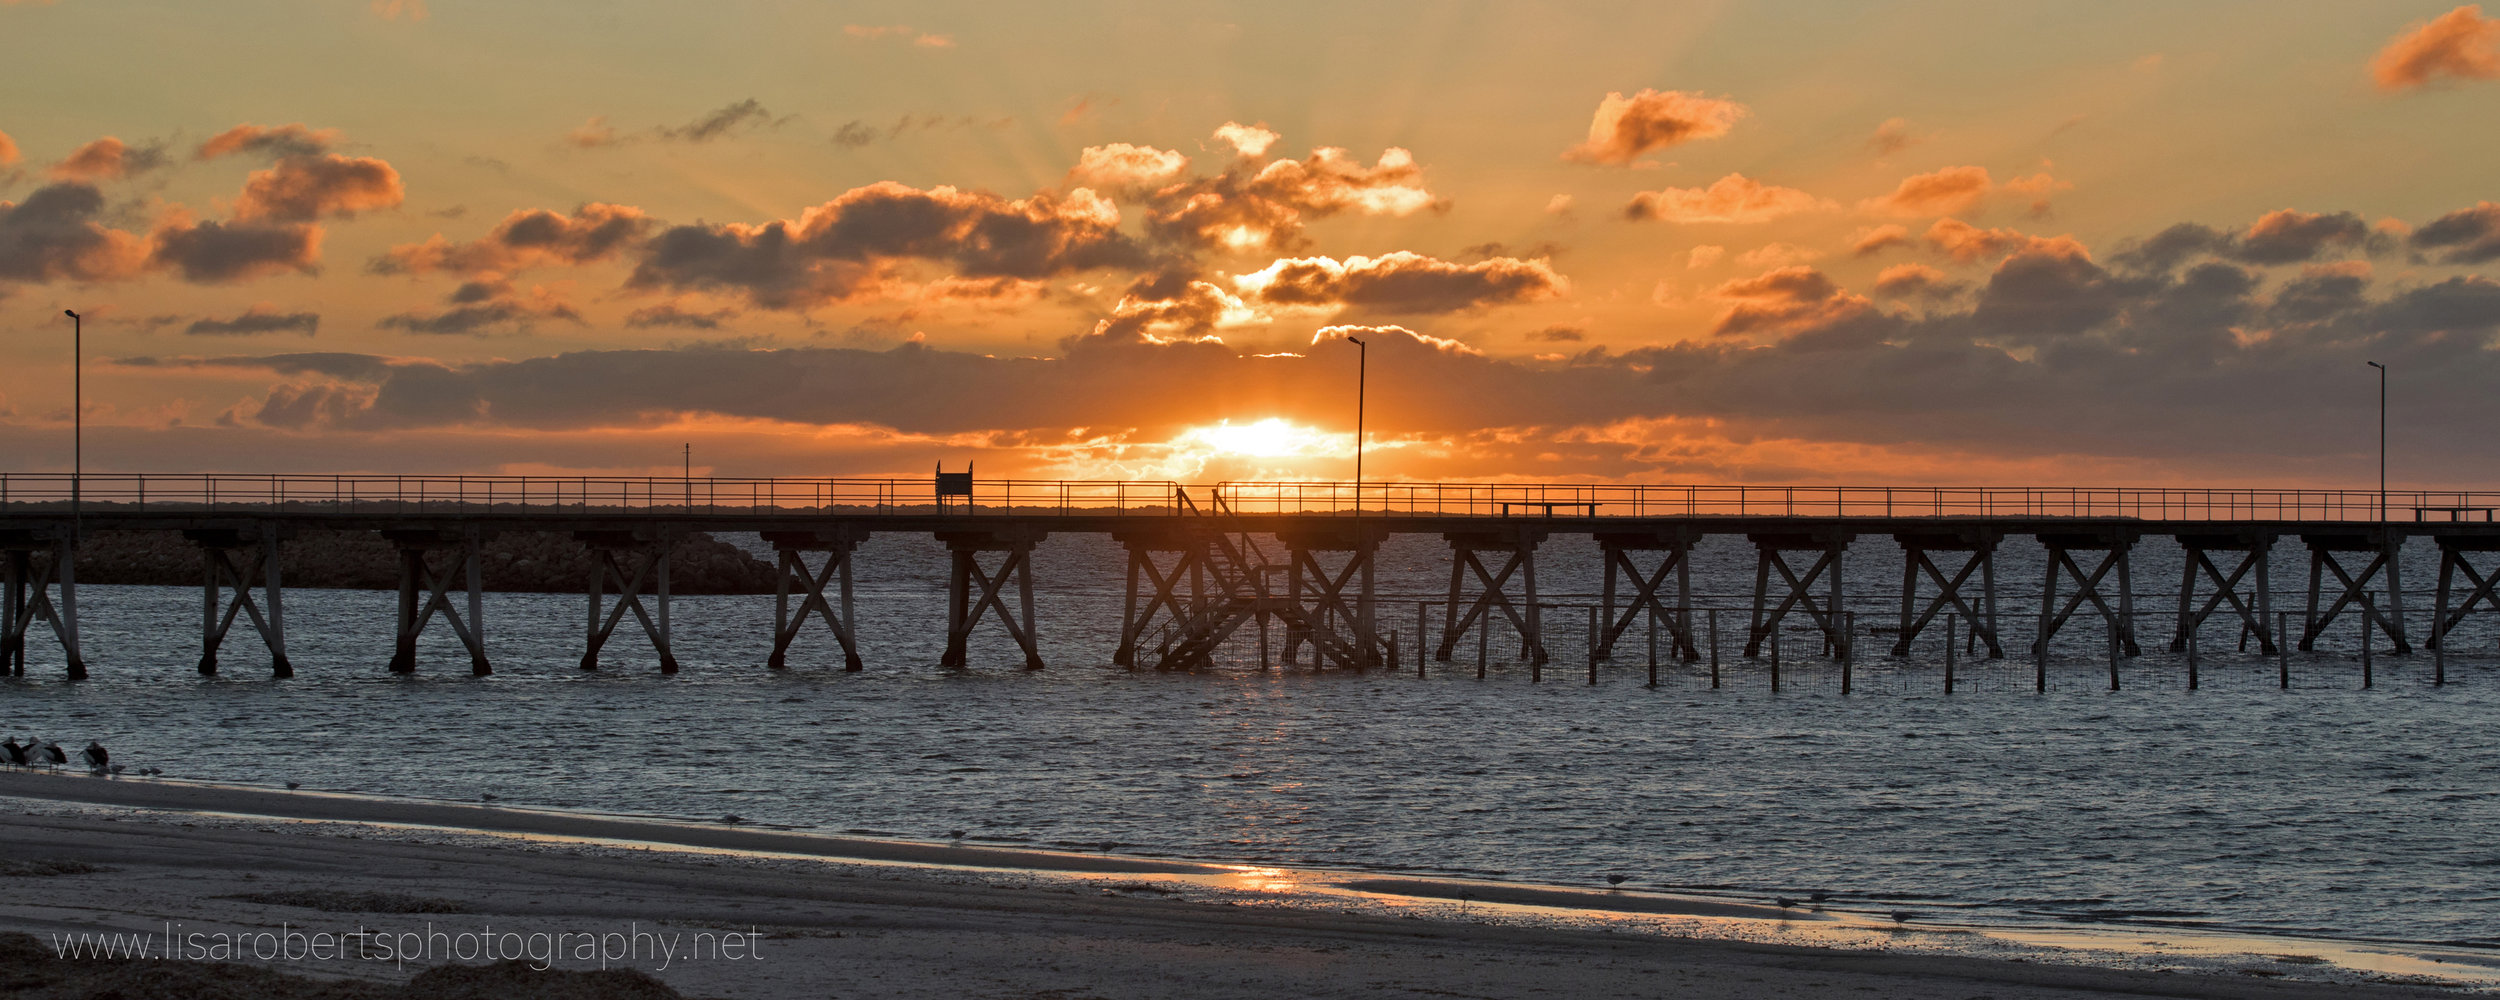 Sunset behind the pier, Smoky Bay, South Australia